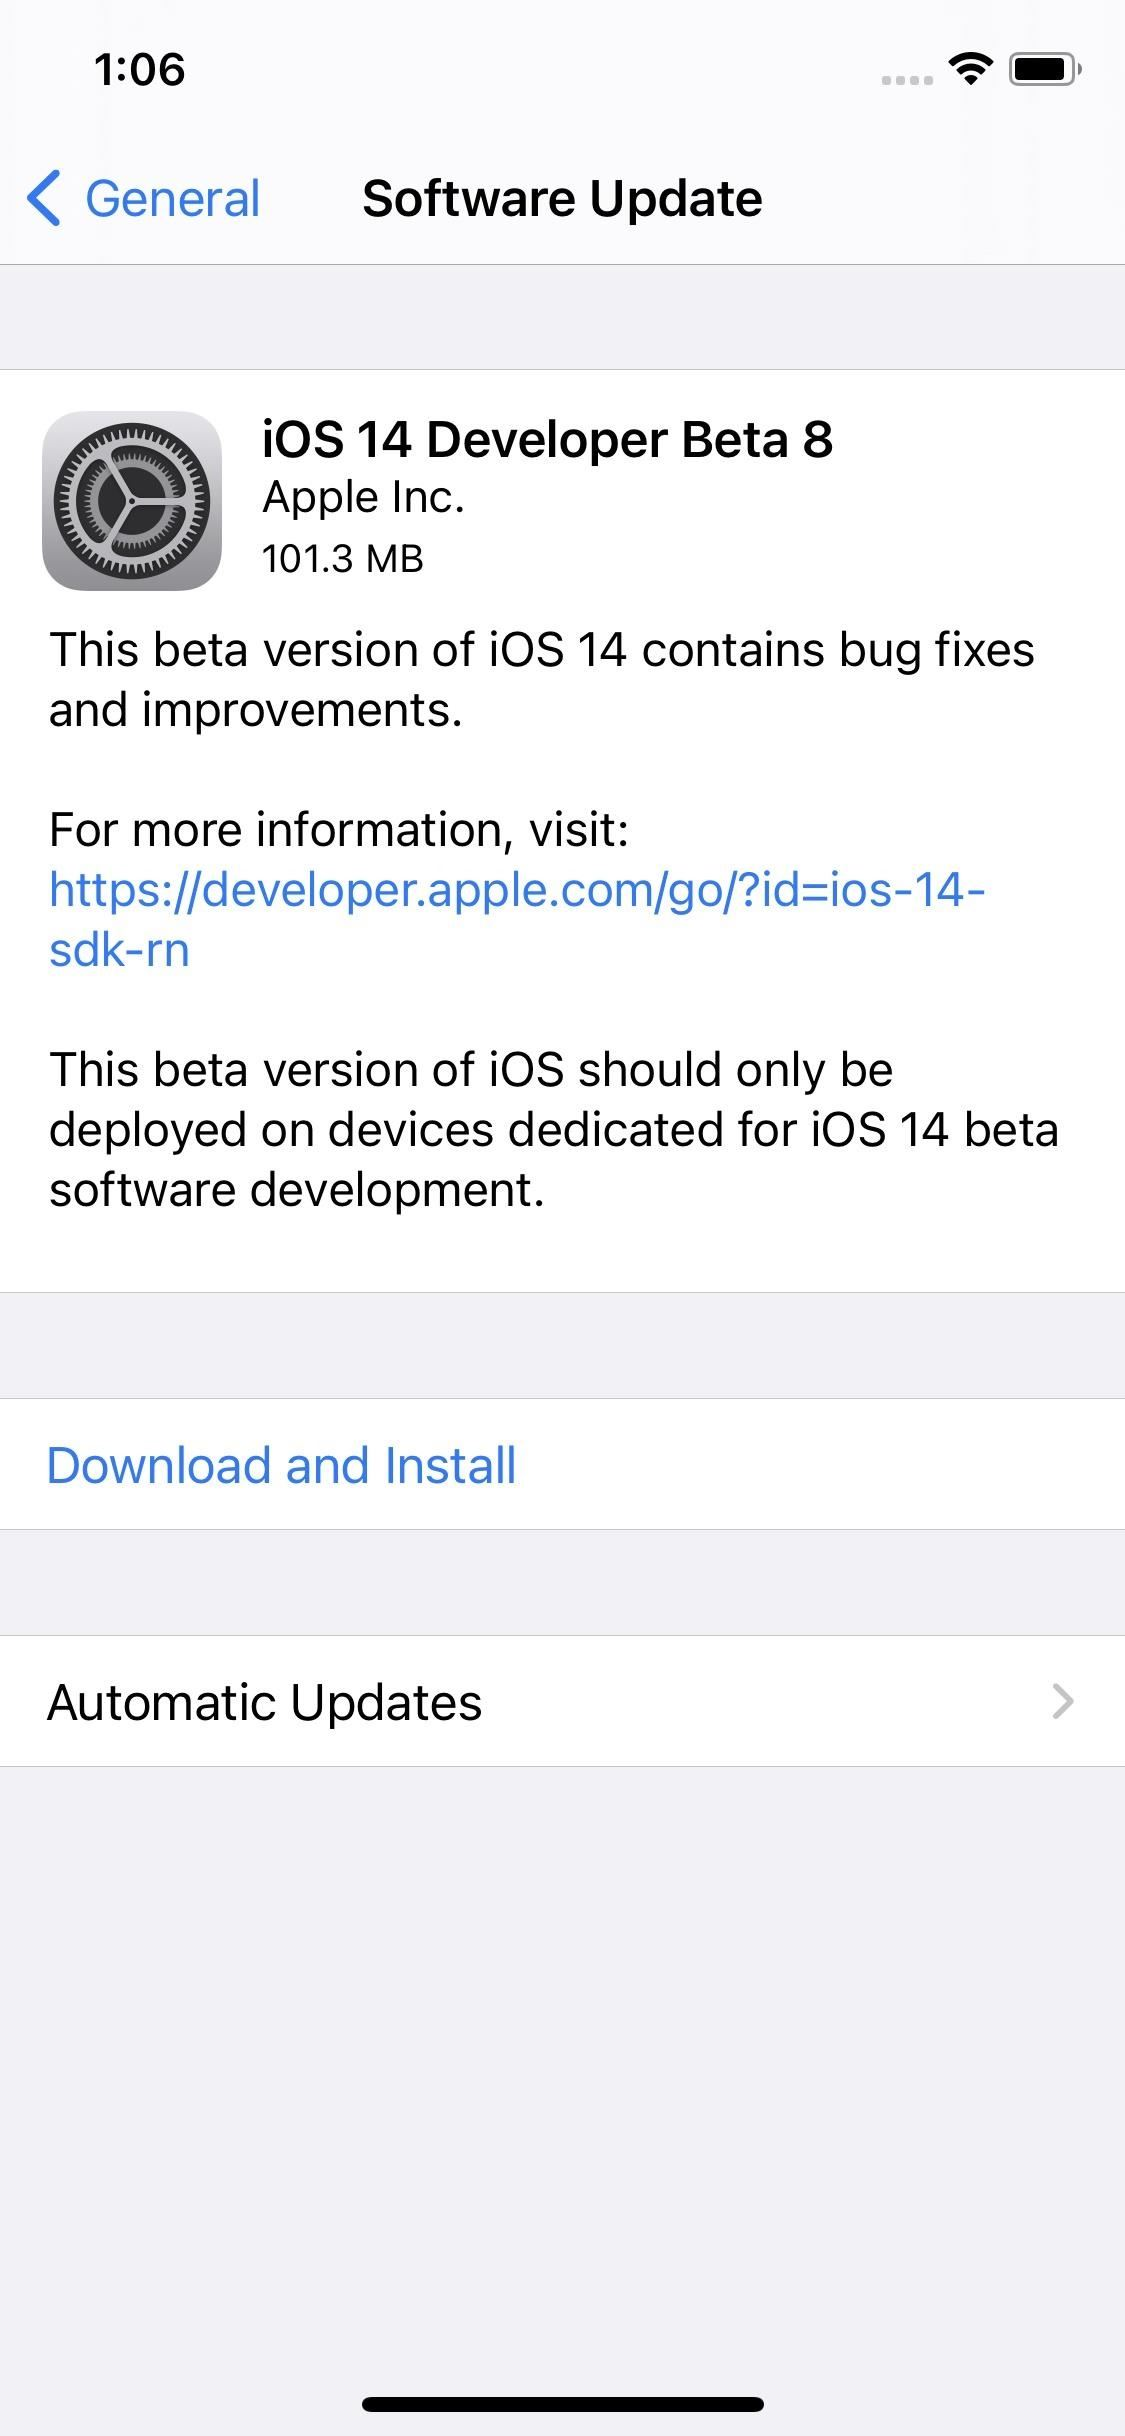 Apple Releases iOS 14 Developer Beta 8 for iPhone